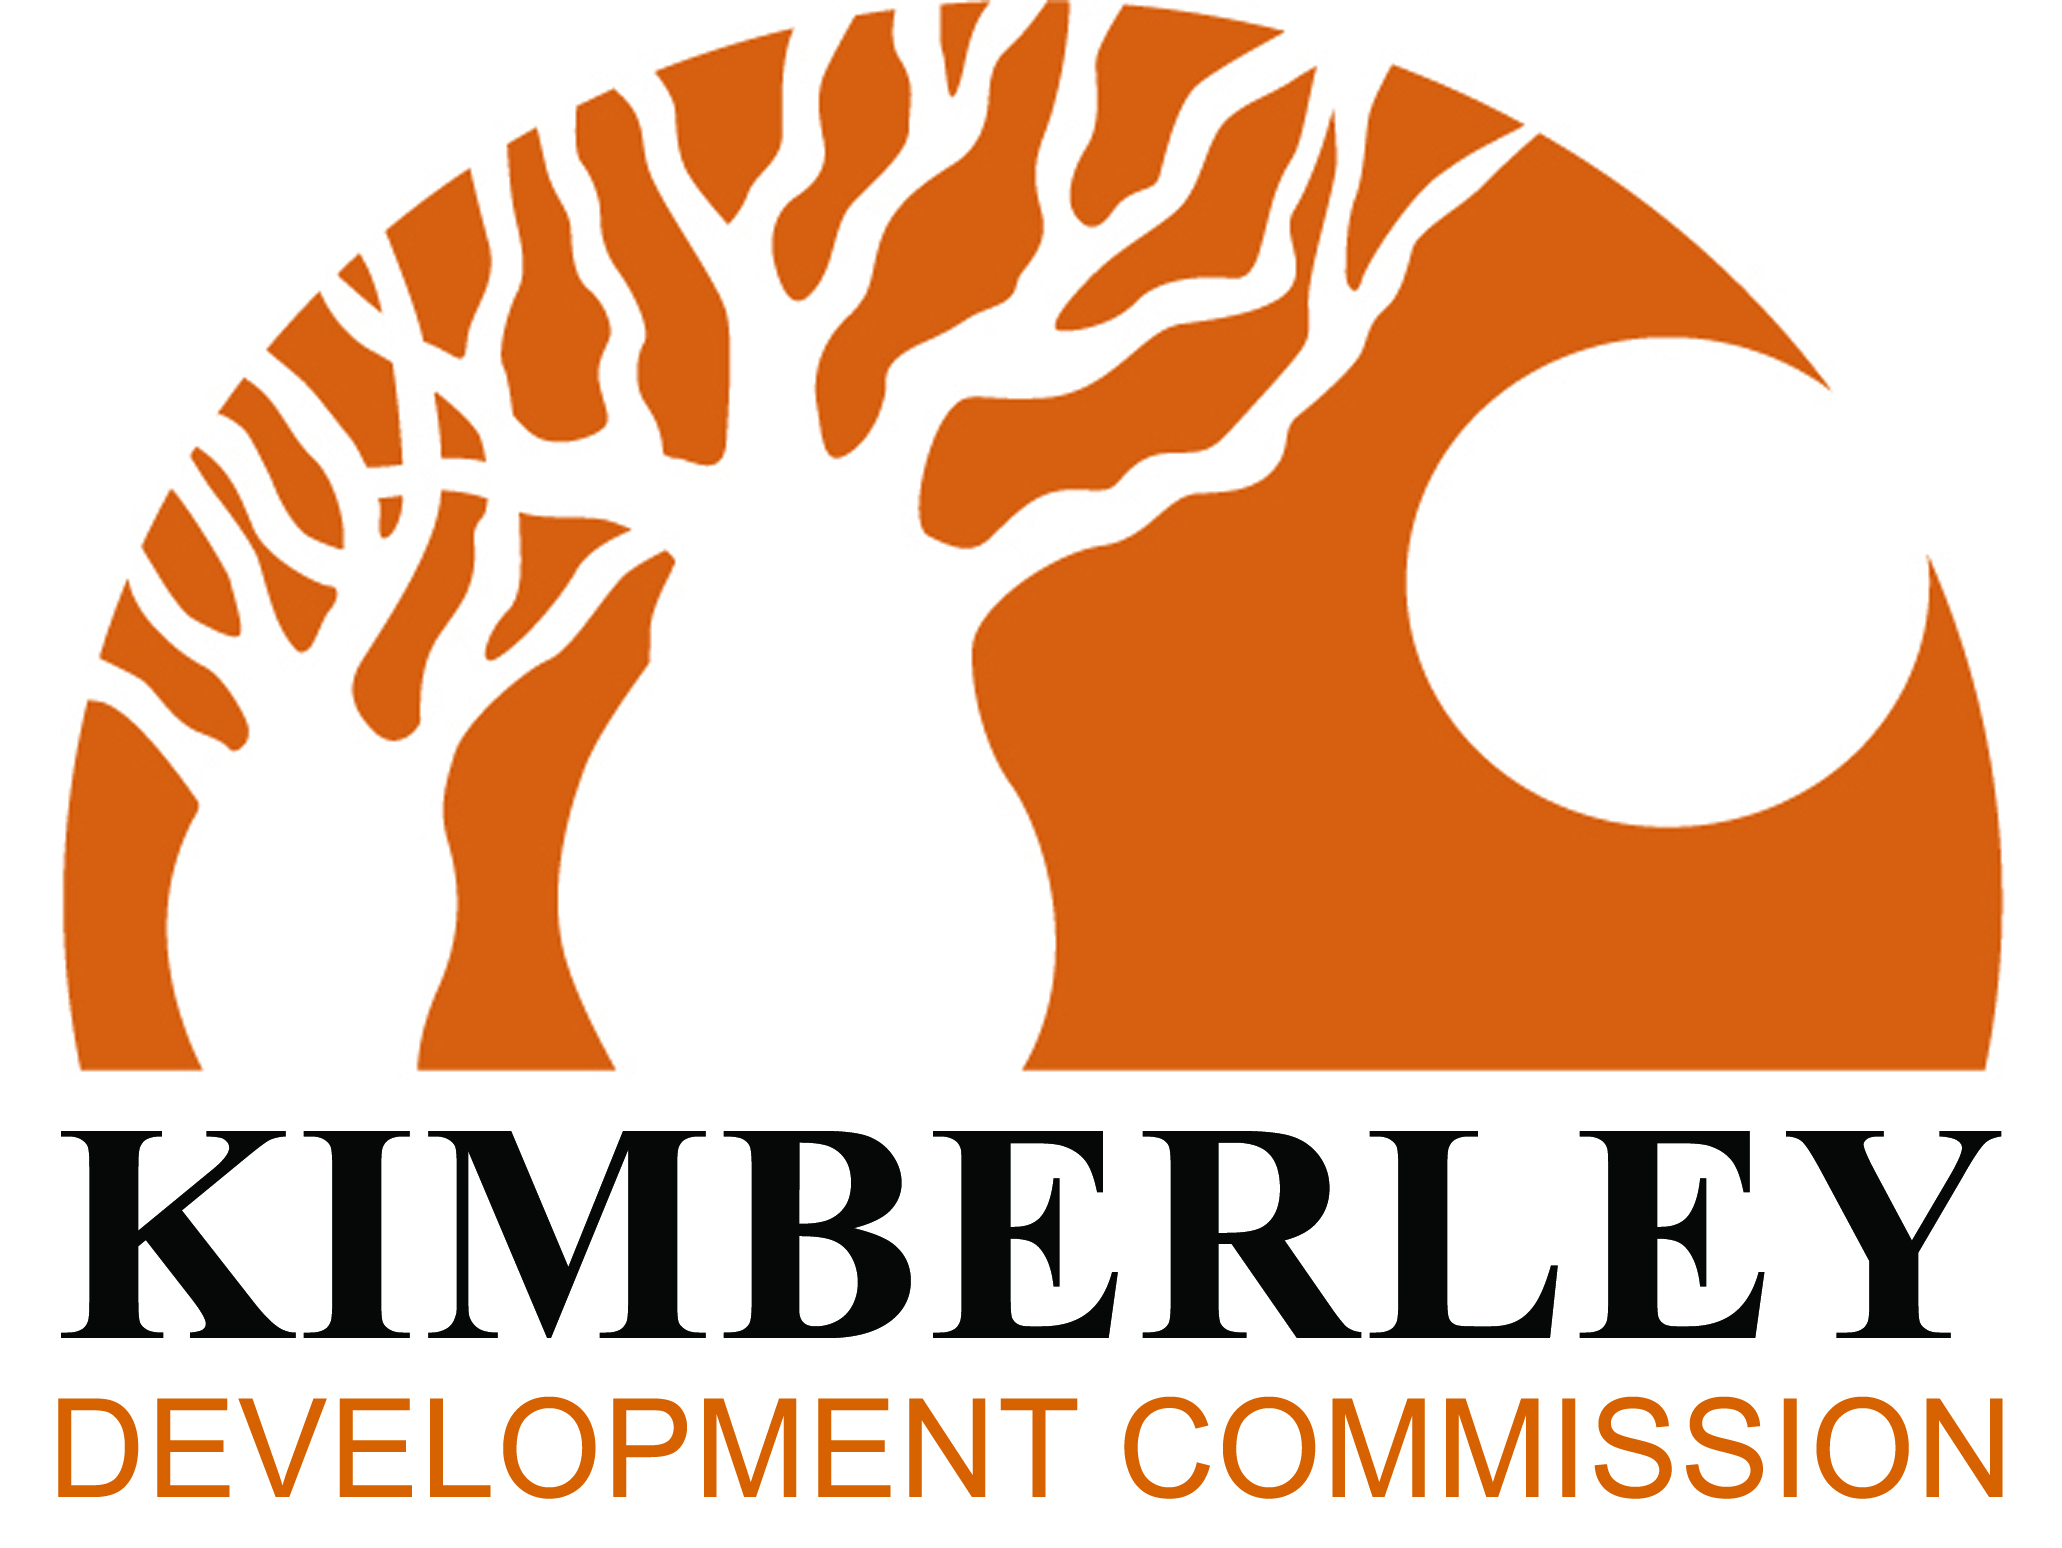 Kimberley Development Commission logo